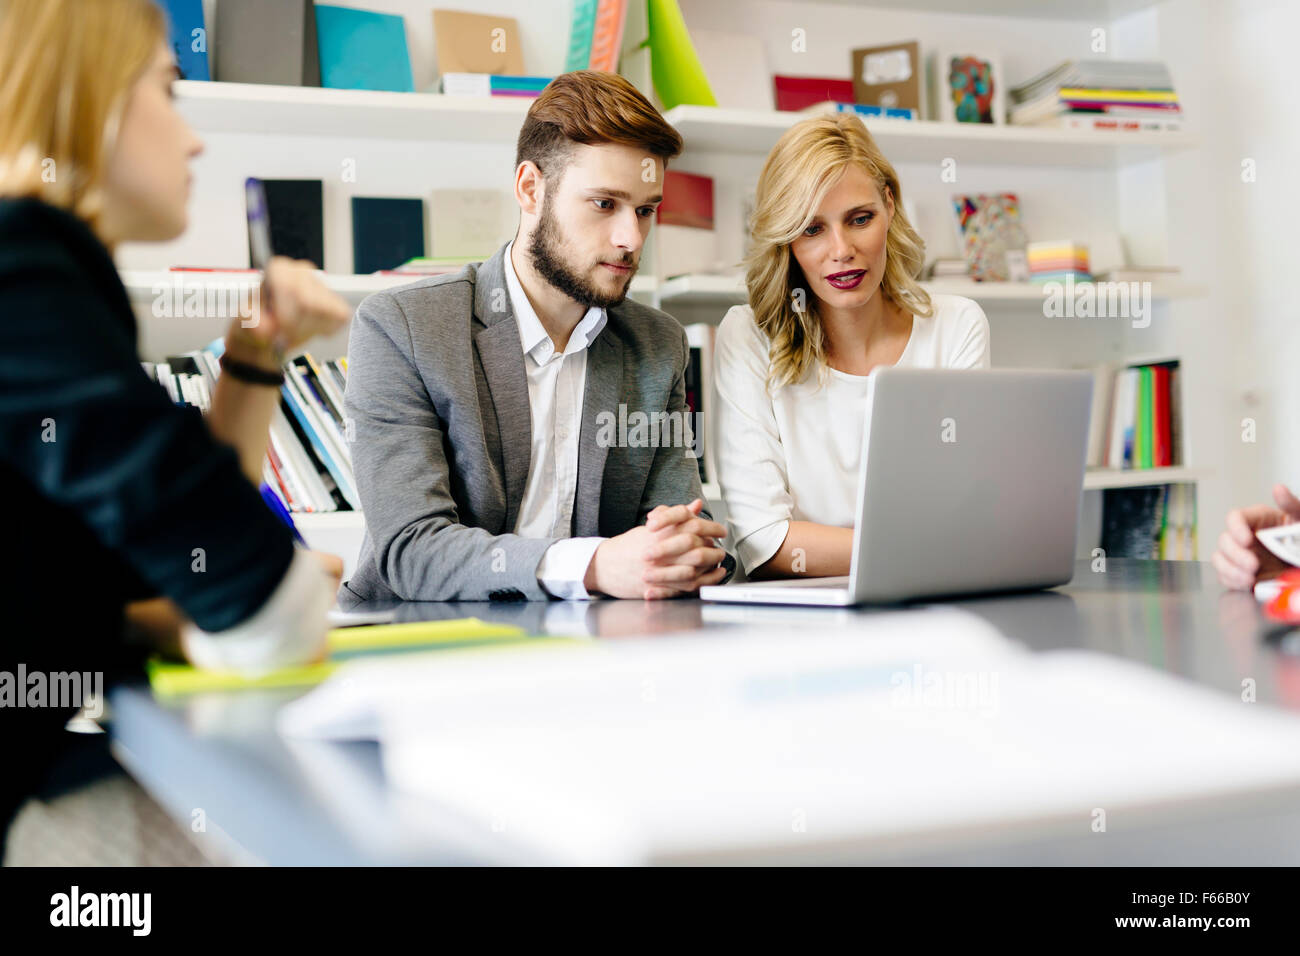 Businessman and businesswoman working together in office as part of a team and consulting with colleagues - Stock Image